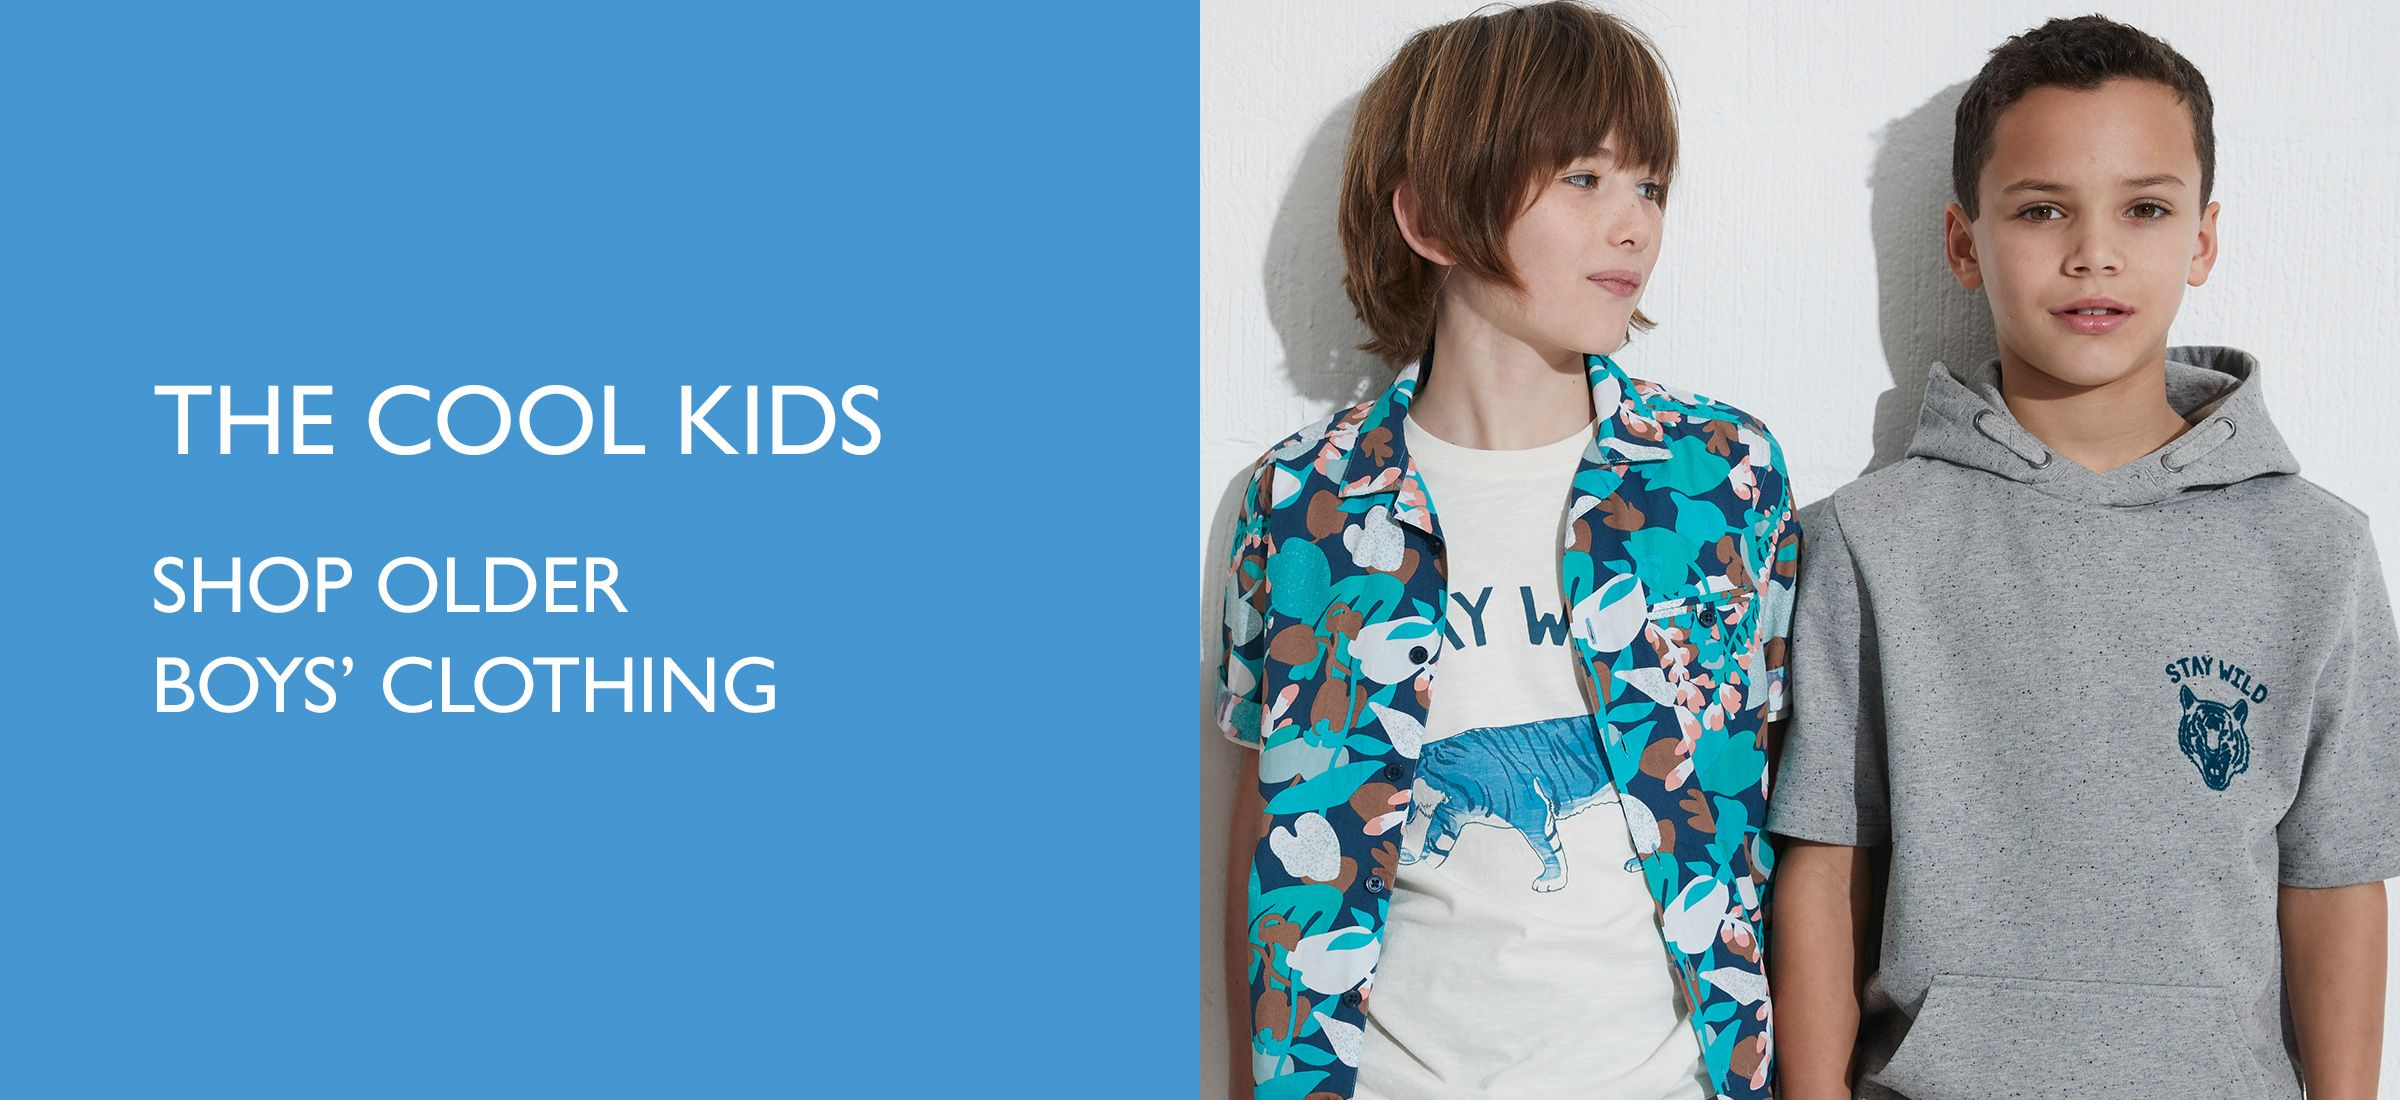 The Cool Kids - Shop older boys' clothing